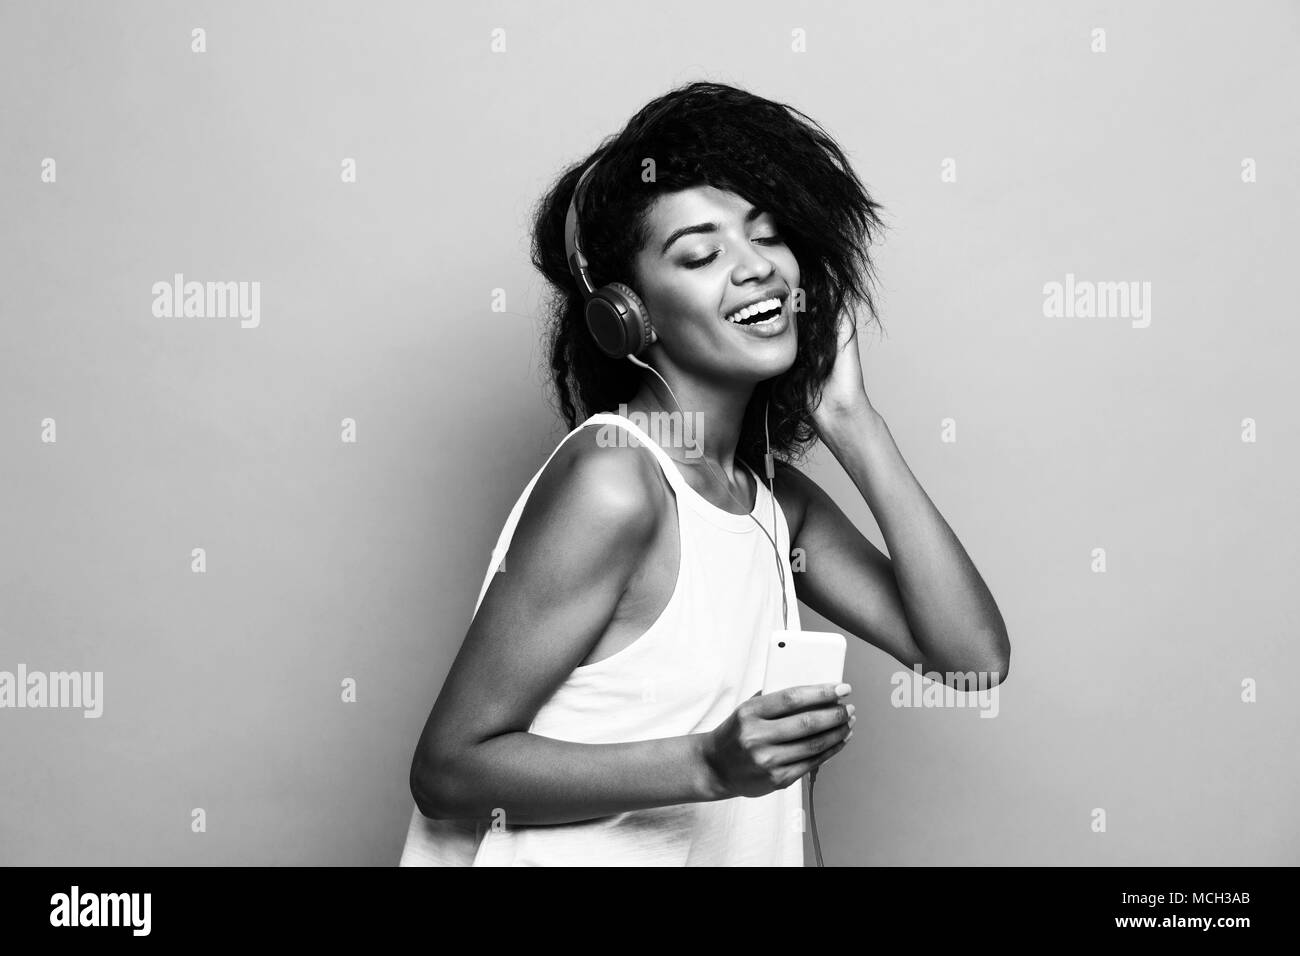 Lifestyle concept portrait of beautiful african american woman joyful listening to music on mobile phone yellow pastel studio background black and white